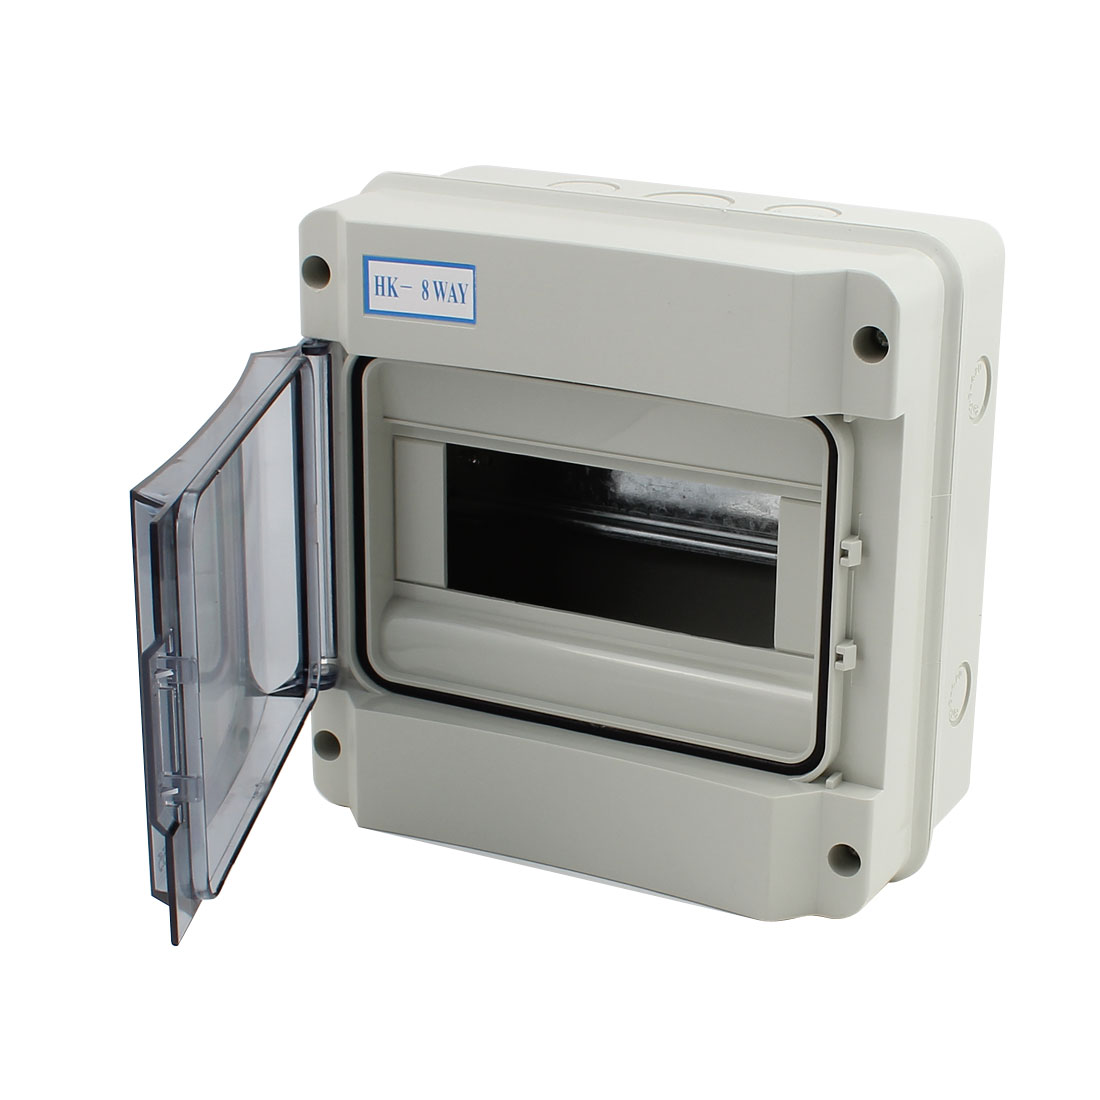 185x185x105mm Waterproof 8 Ways Distribution Box Switch Cover for Circuit Breaker